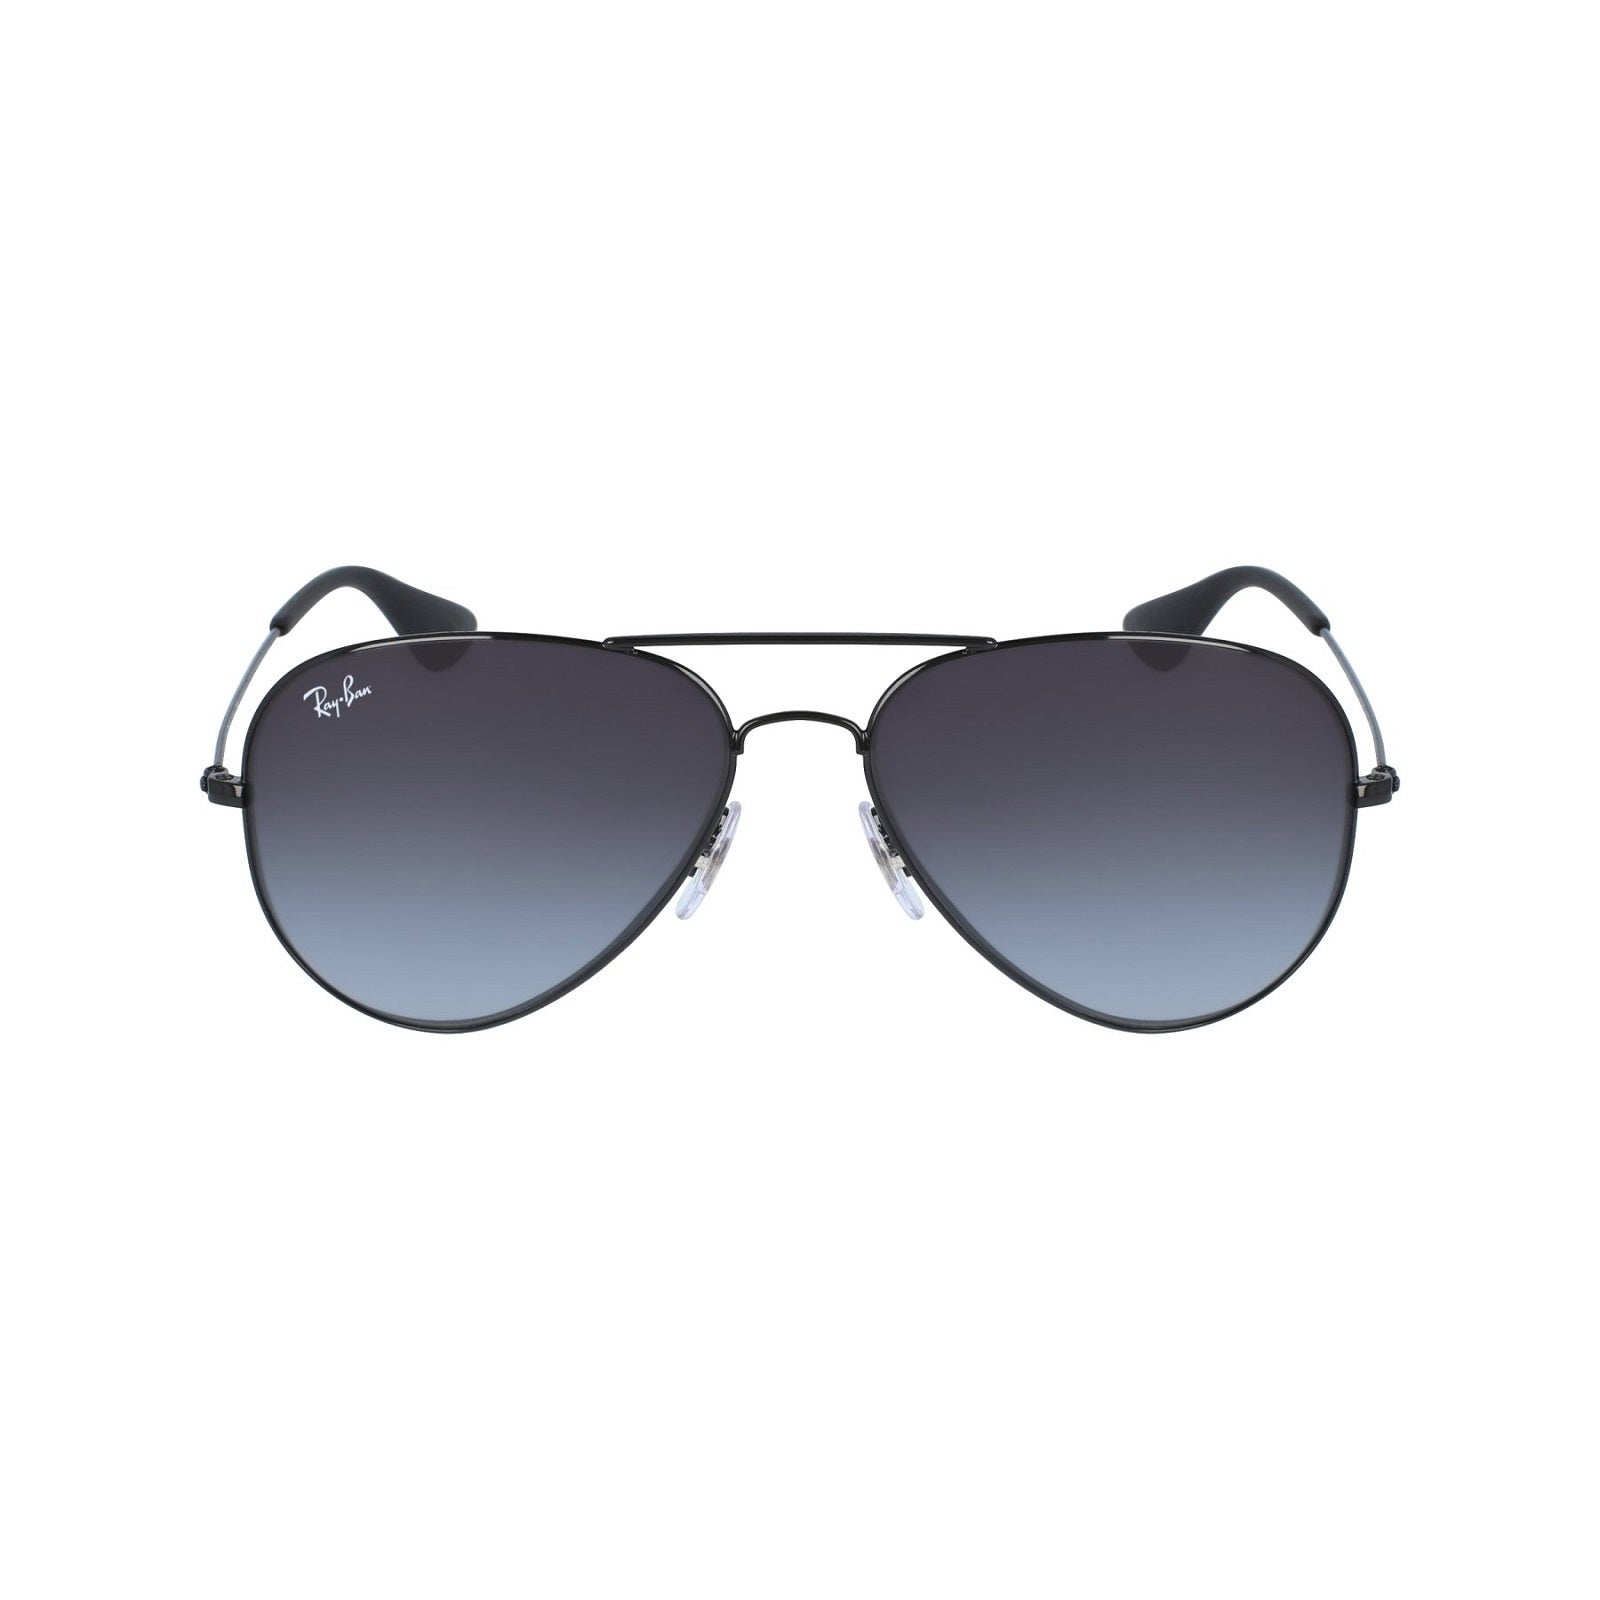 4affcae3592 Shop Ray-Ban RB3558 002 8G Unisex Black Frame Grey Gradient Lens Sunglasses  - Free Shipping Today - Overstock - 15078999